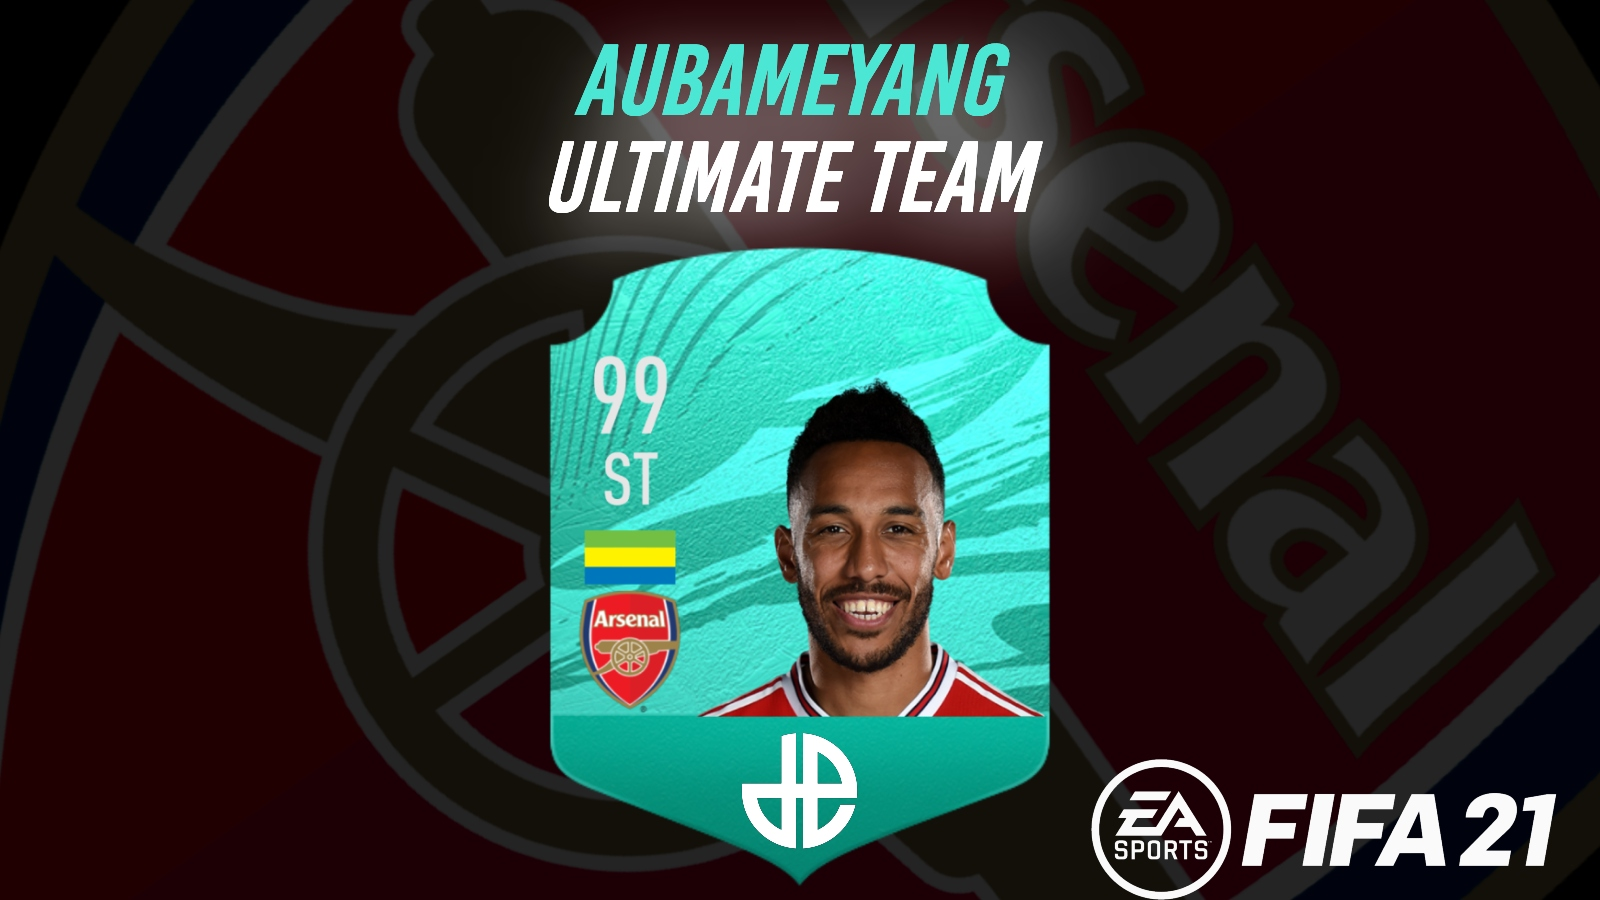 Aubameyang FIFA 21 Ultimate Team pro card